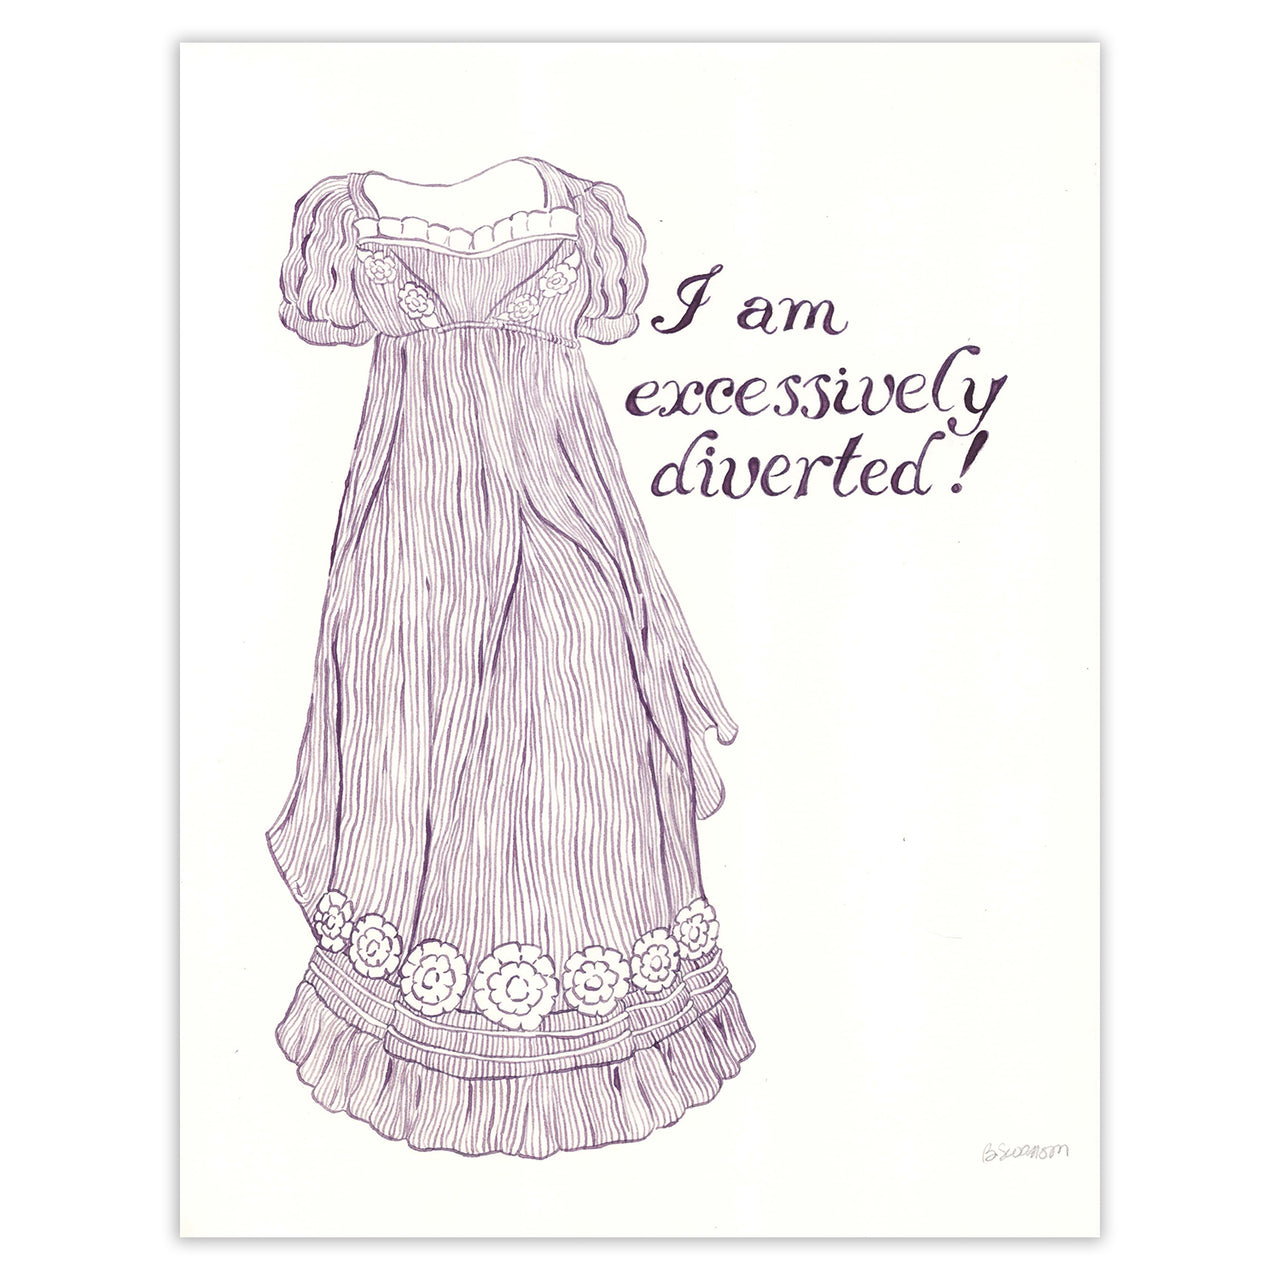 Jane Austen Excessively Diverted Original Ink Drawing